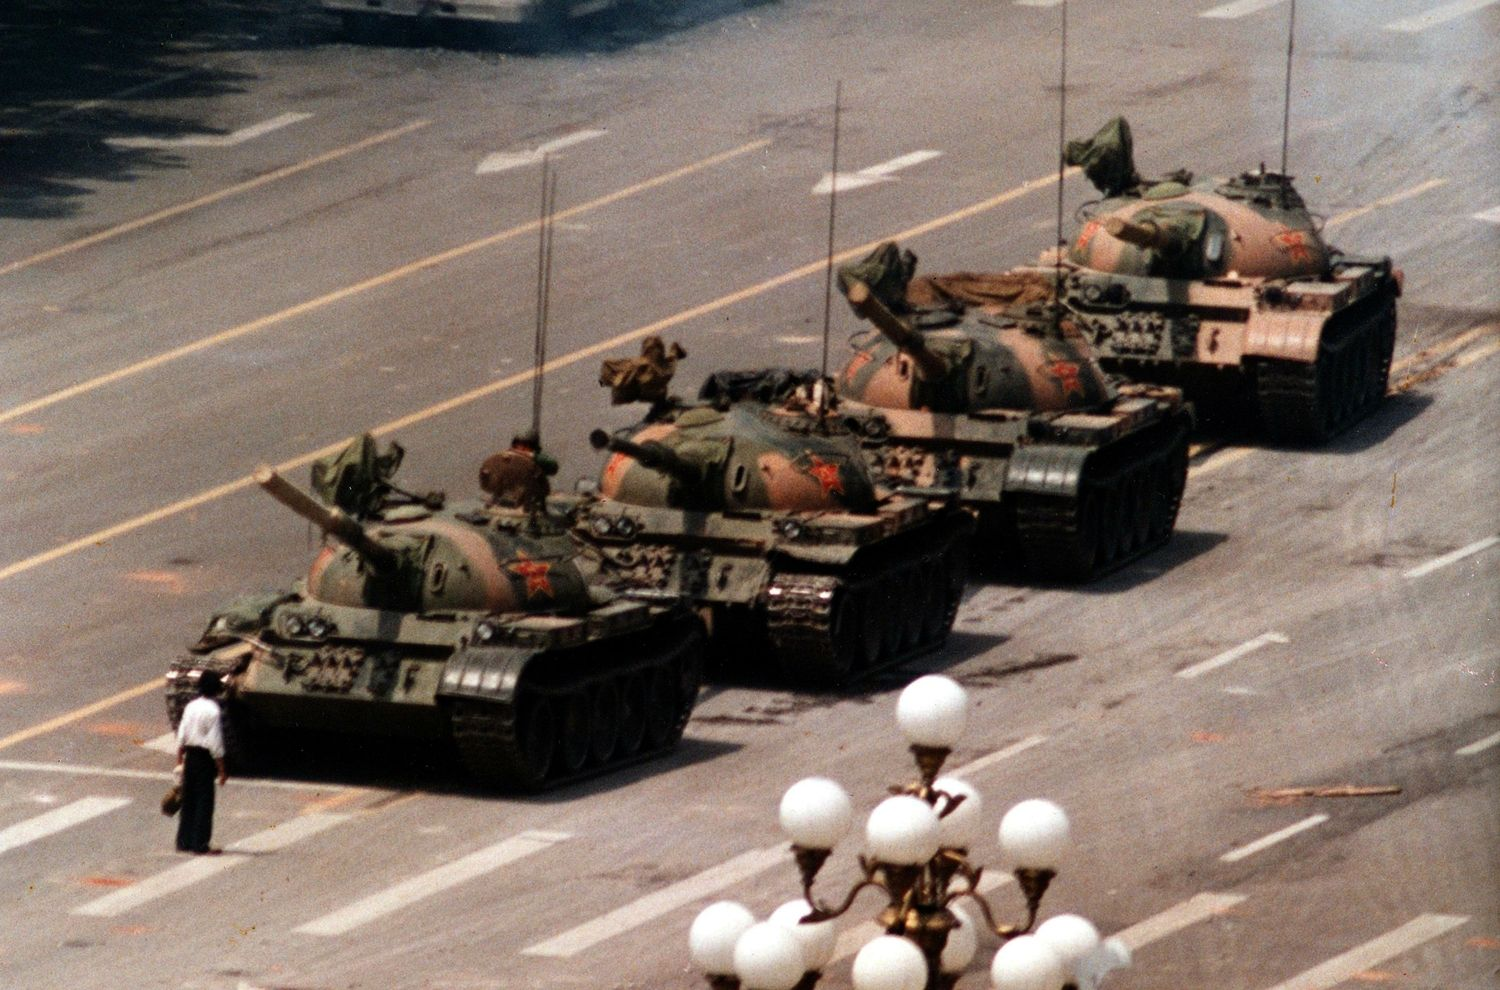 This image of a lone man standing in front military tanks has come to symbolize the atrocity that occurred at Tiananmen Square. This unidentified man epitomizes bravery.   He stood up for something he strongly believed in. Standing up to people requires courage, standing in front of a military tank that could easily run you over demands bravery.  People say a picture is worth a thousand words, but this picture speaks millions as to what bravery truly is. --Elina D. #OneBraveThing